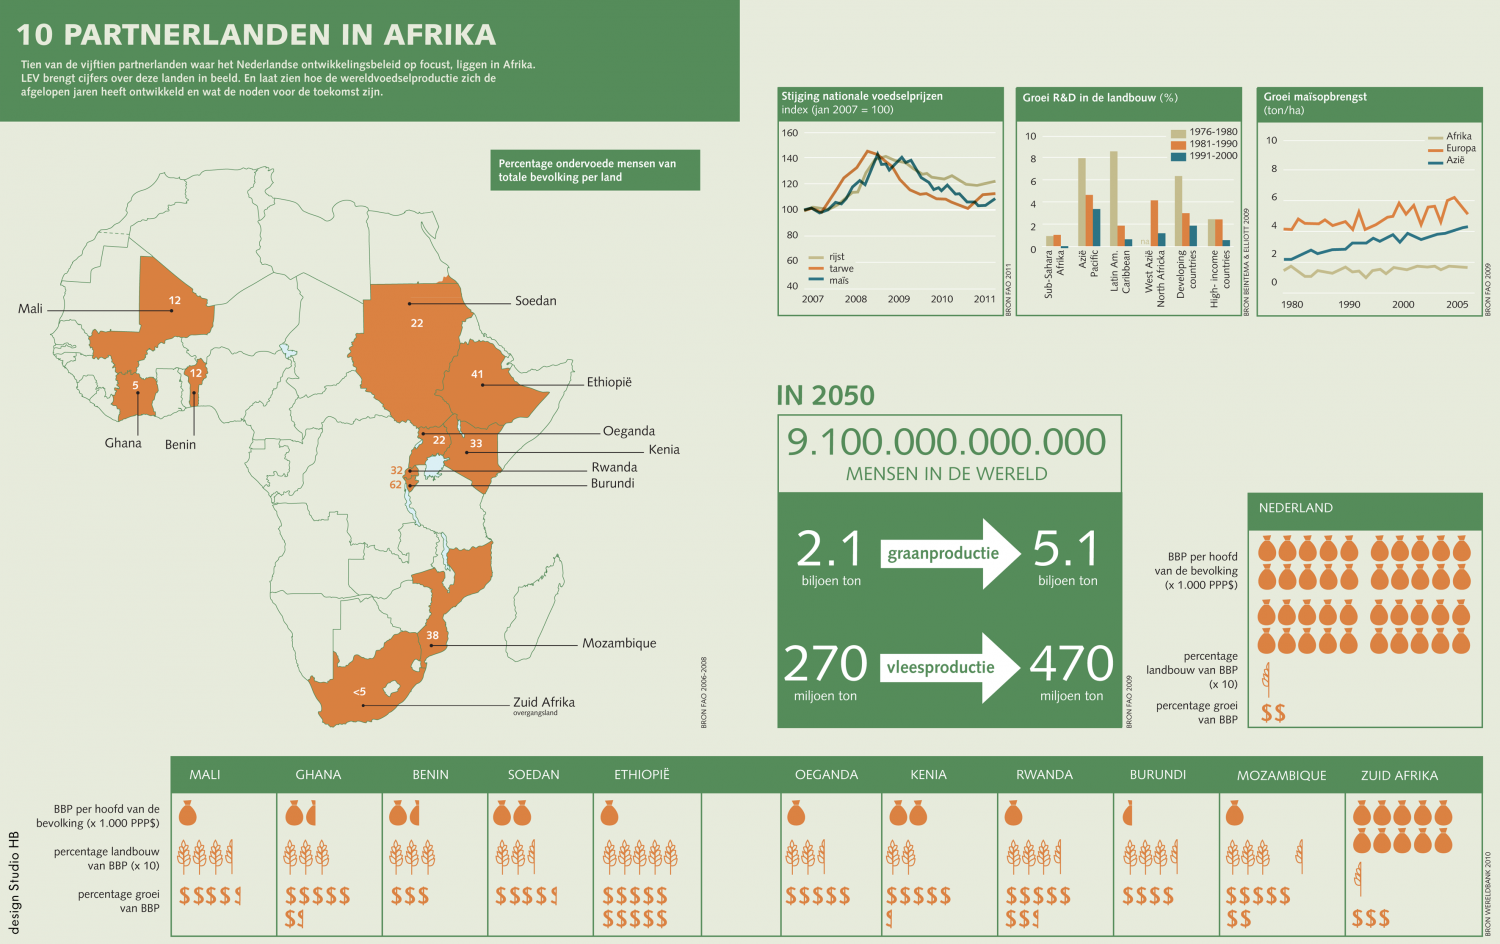 10 partners in Africa  Infographic